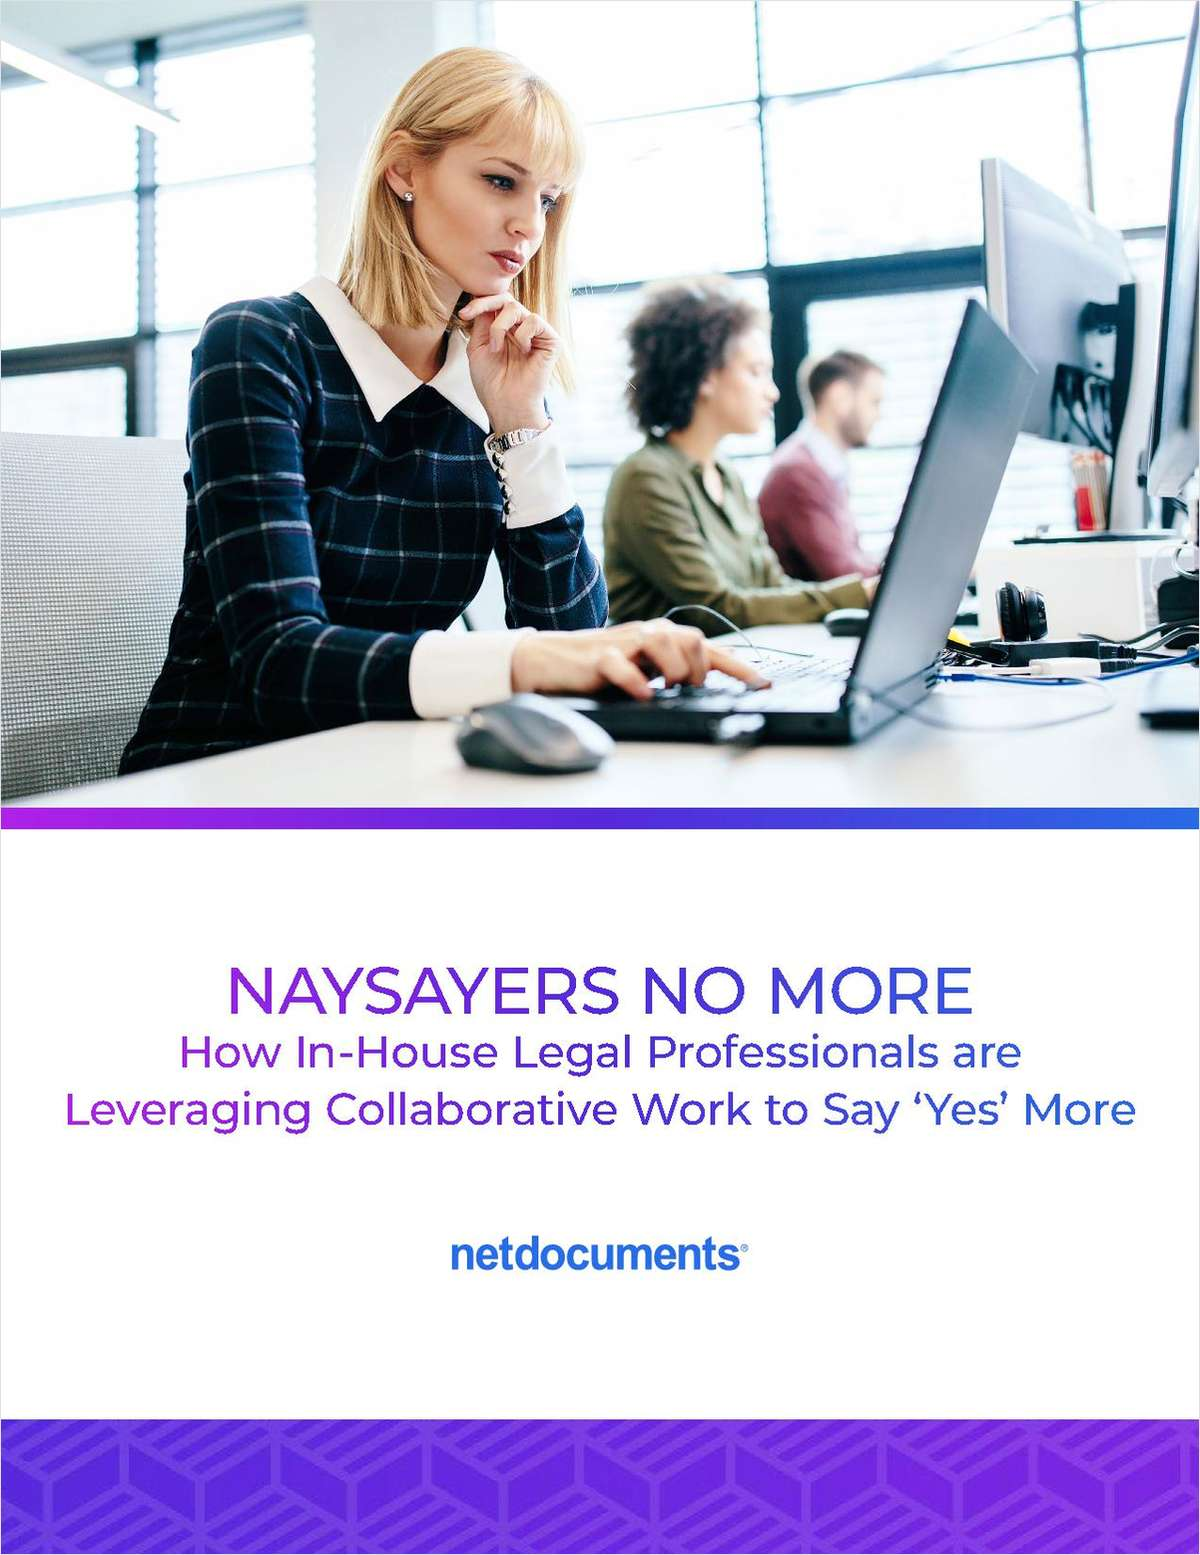 How In-House Legal Professionals are Leveraging Collaborative Work to Say 'Yes' More